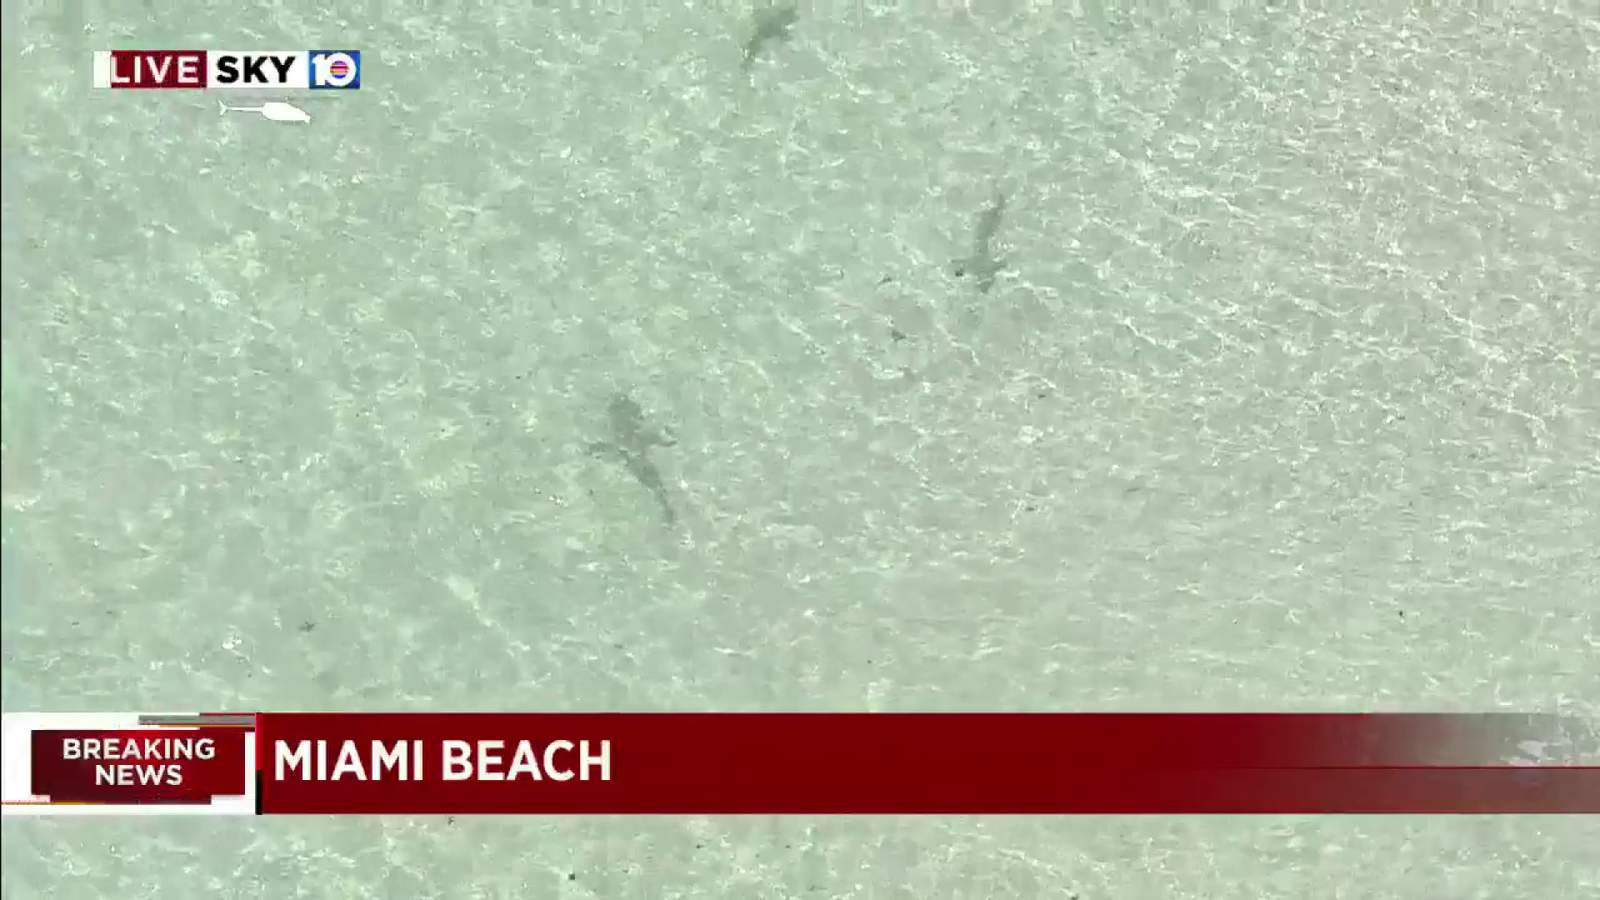 WATCH THIS: Sharks spotted close to Miami Beach shoreline